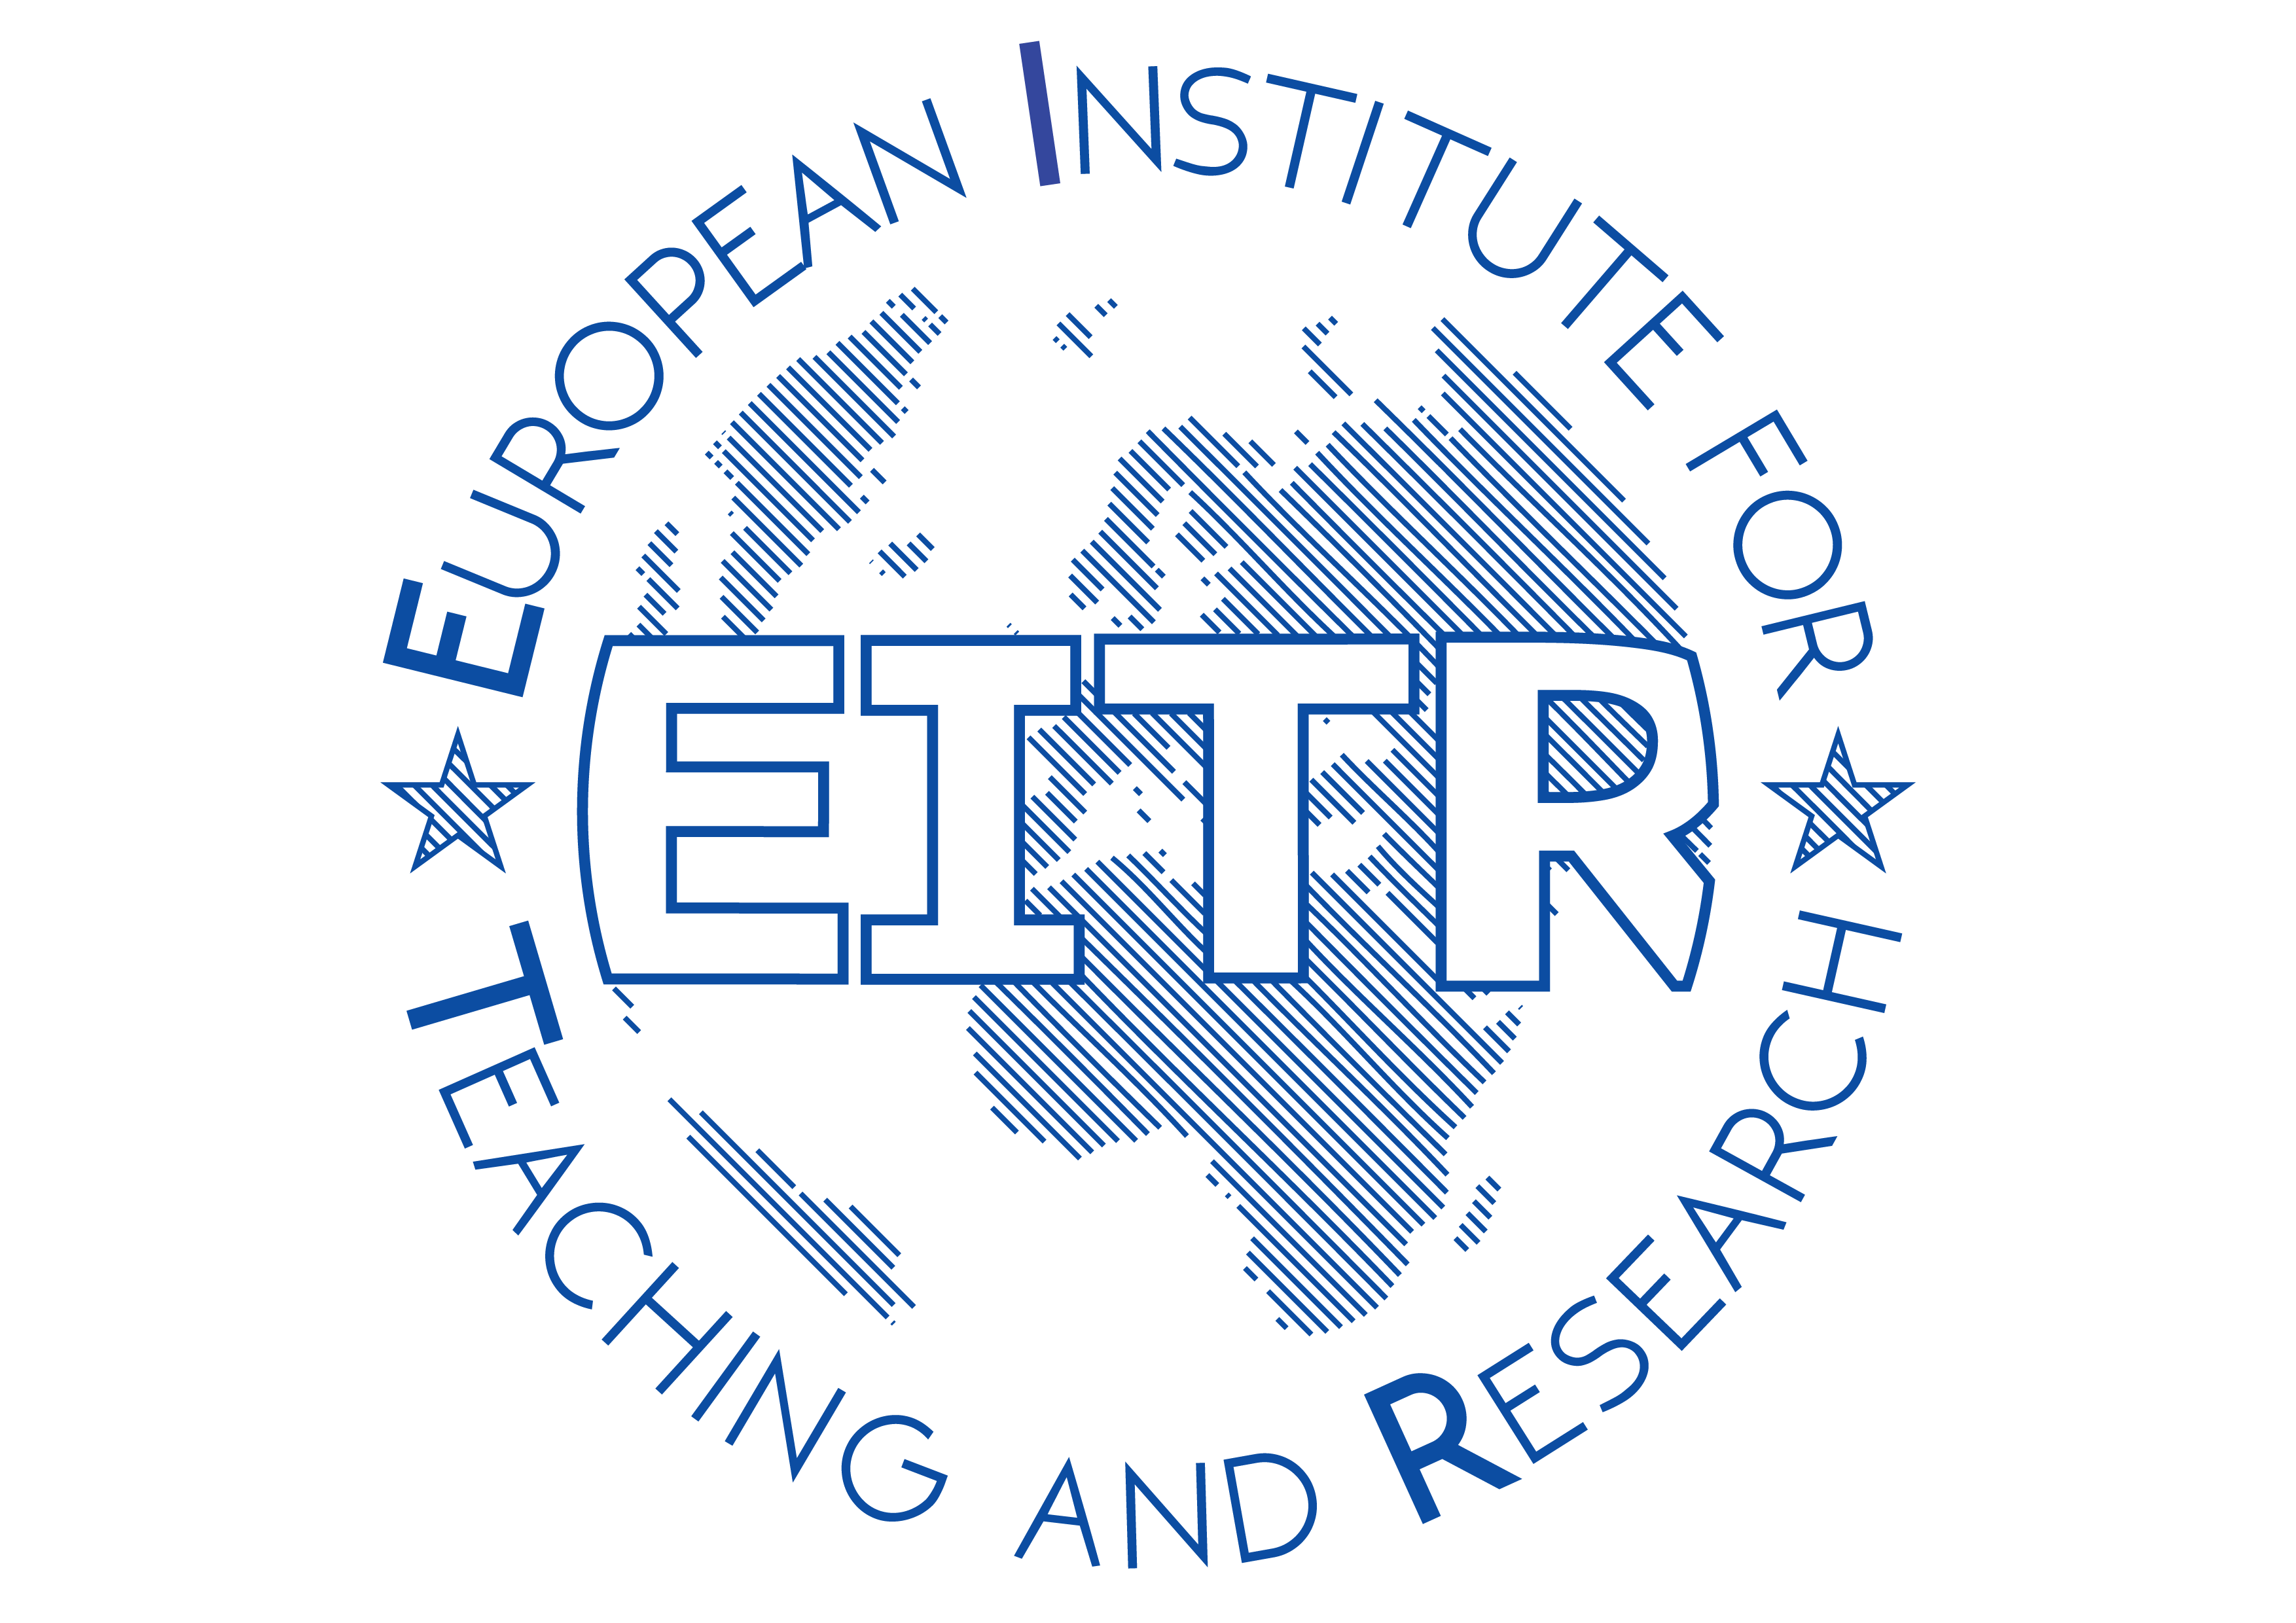 European Institute for Teaching & Research